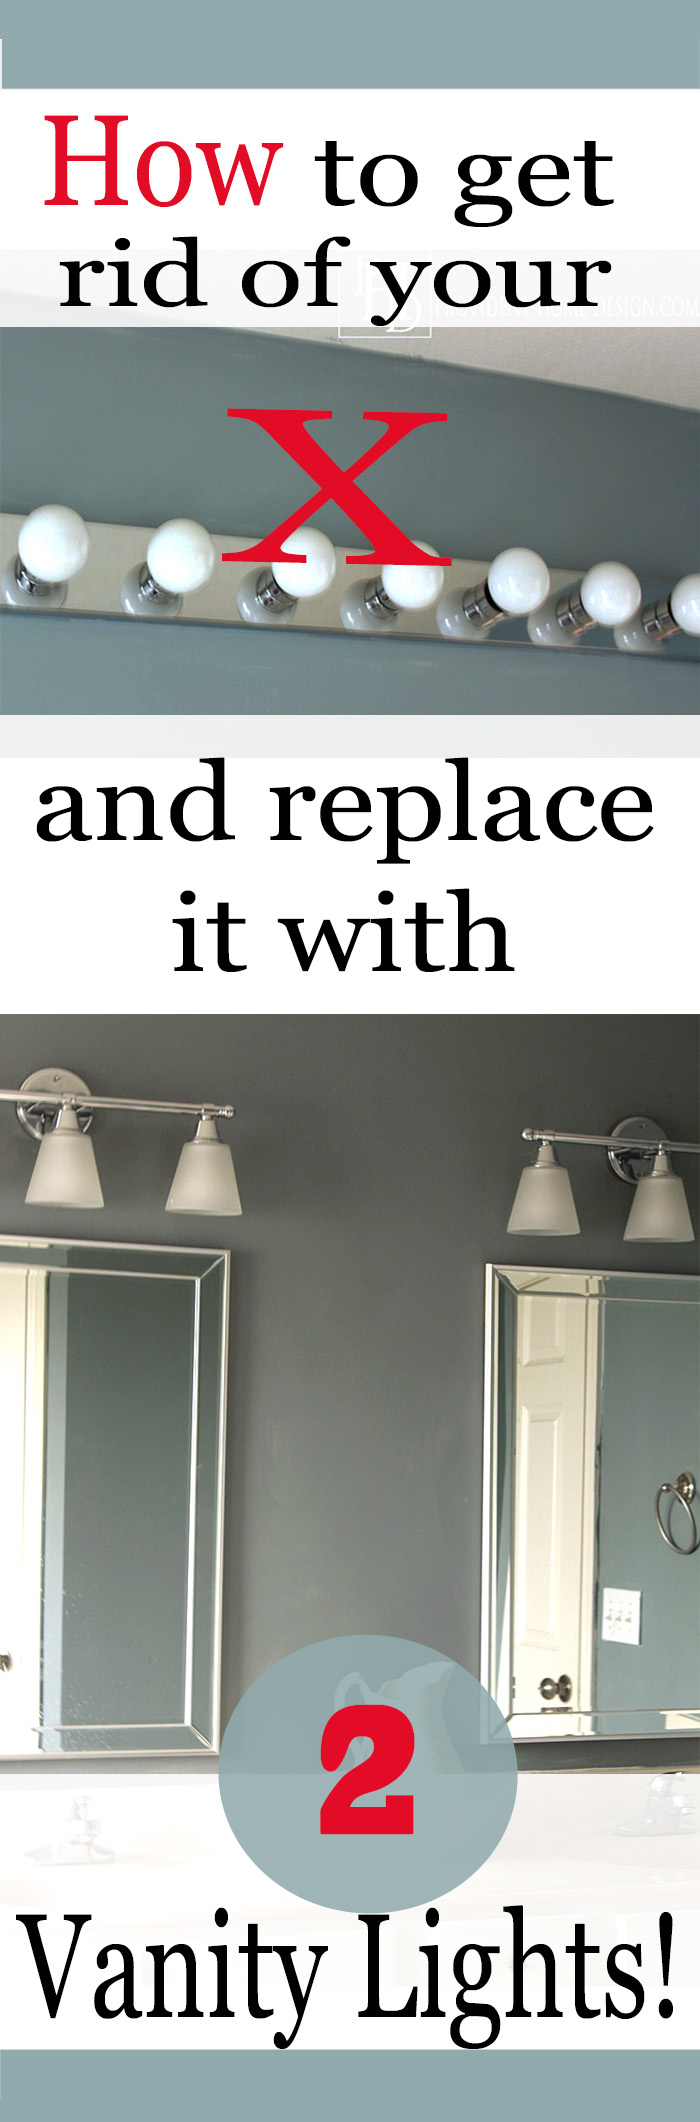 How to Replace your Hollywood Light with 2 Vanity Lights